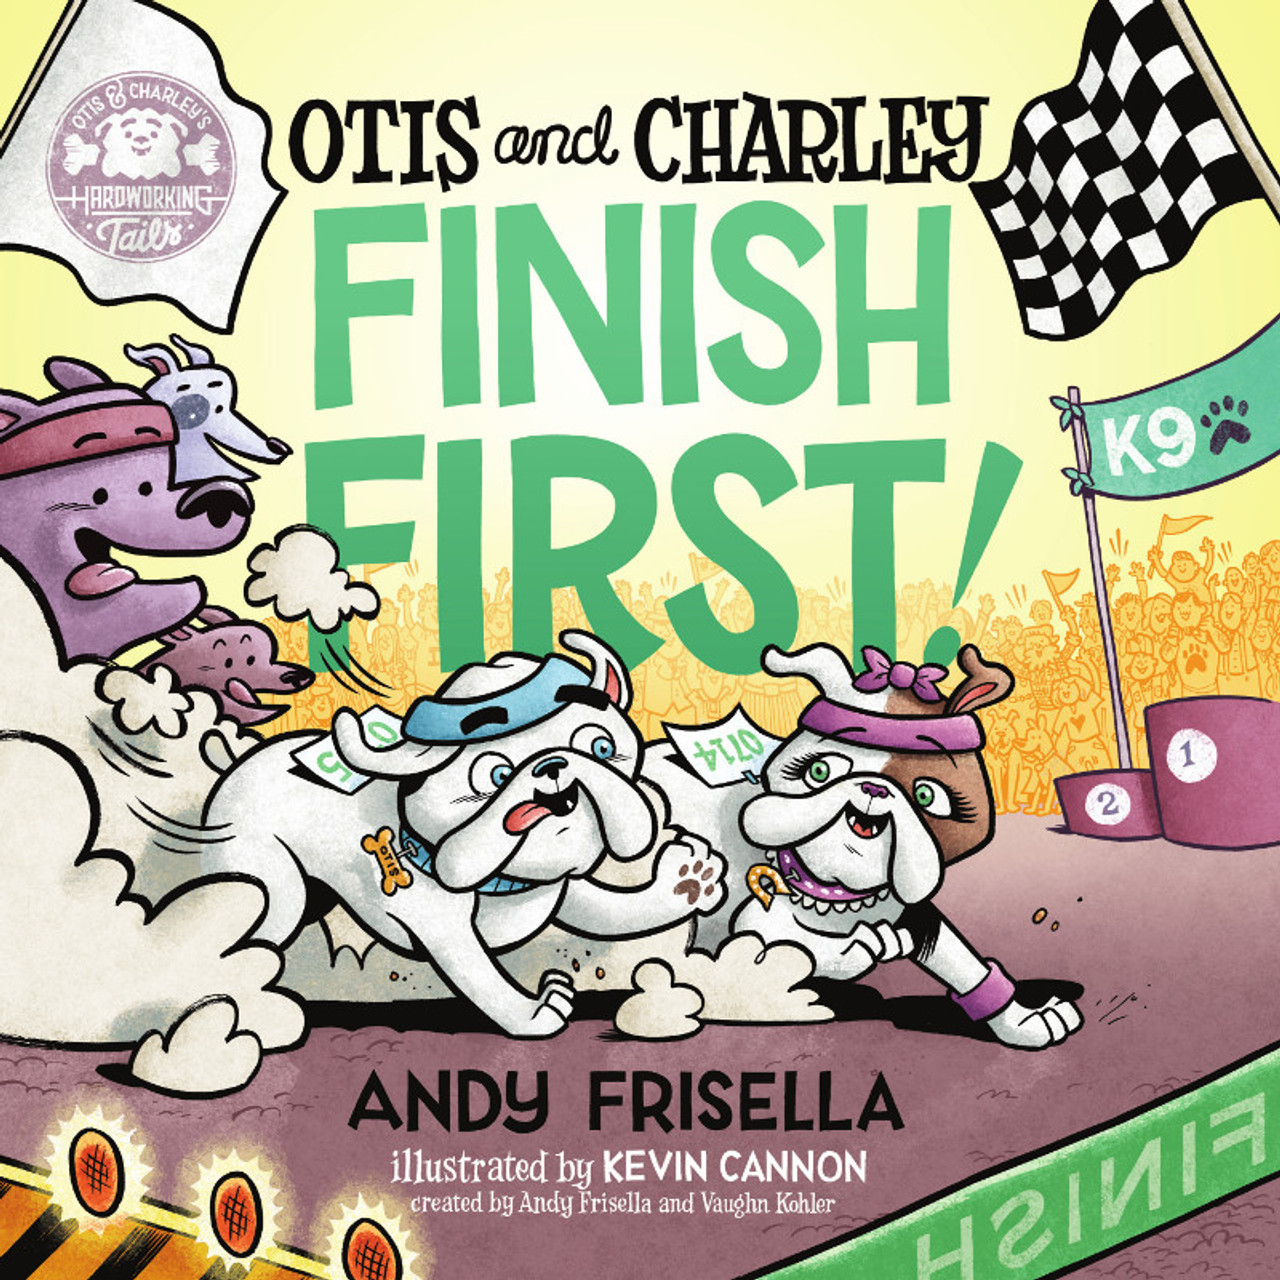 Otis and Charley Finish First!